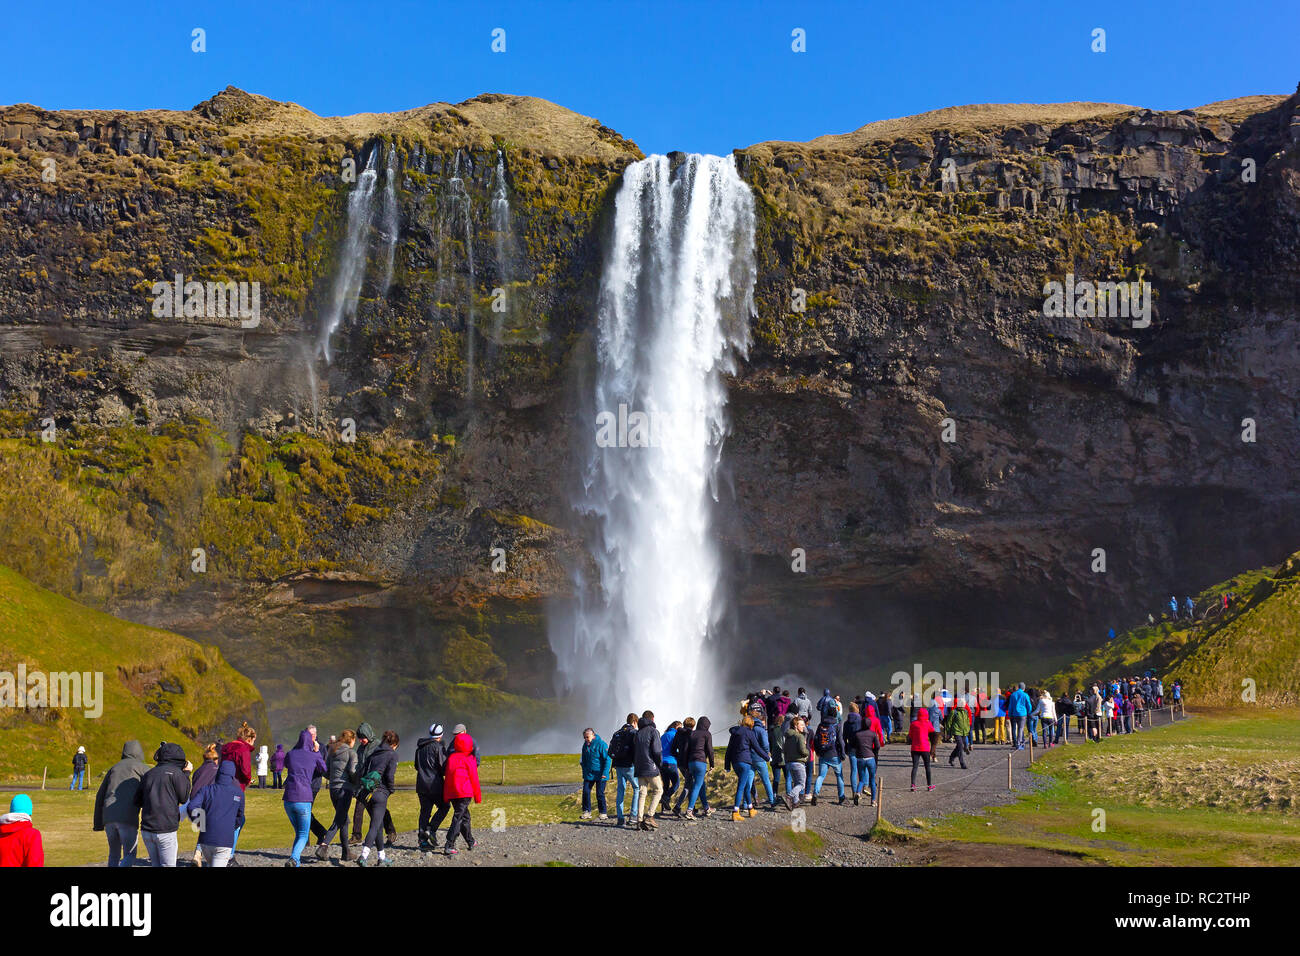 Overcrowded tourist destinations – at Skogafoss waterfall in South Iceland. Over-tourism is a new emerging trend. - Stock Image